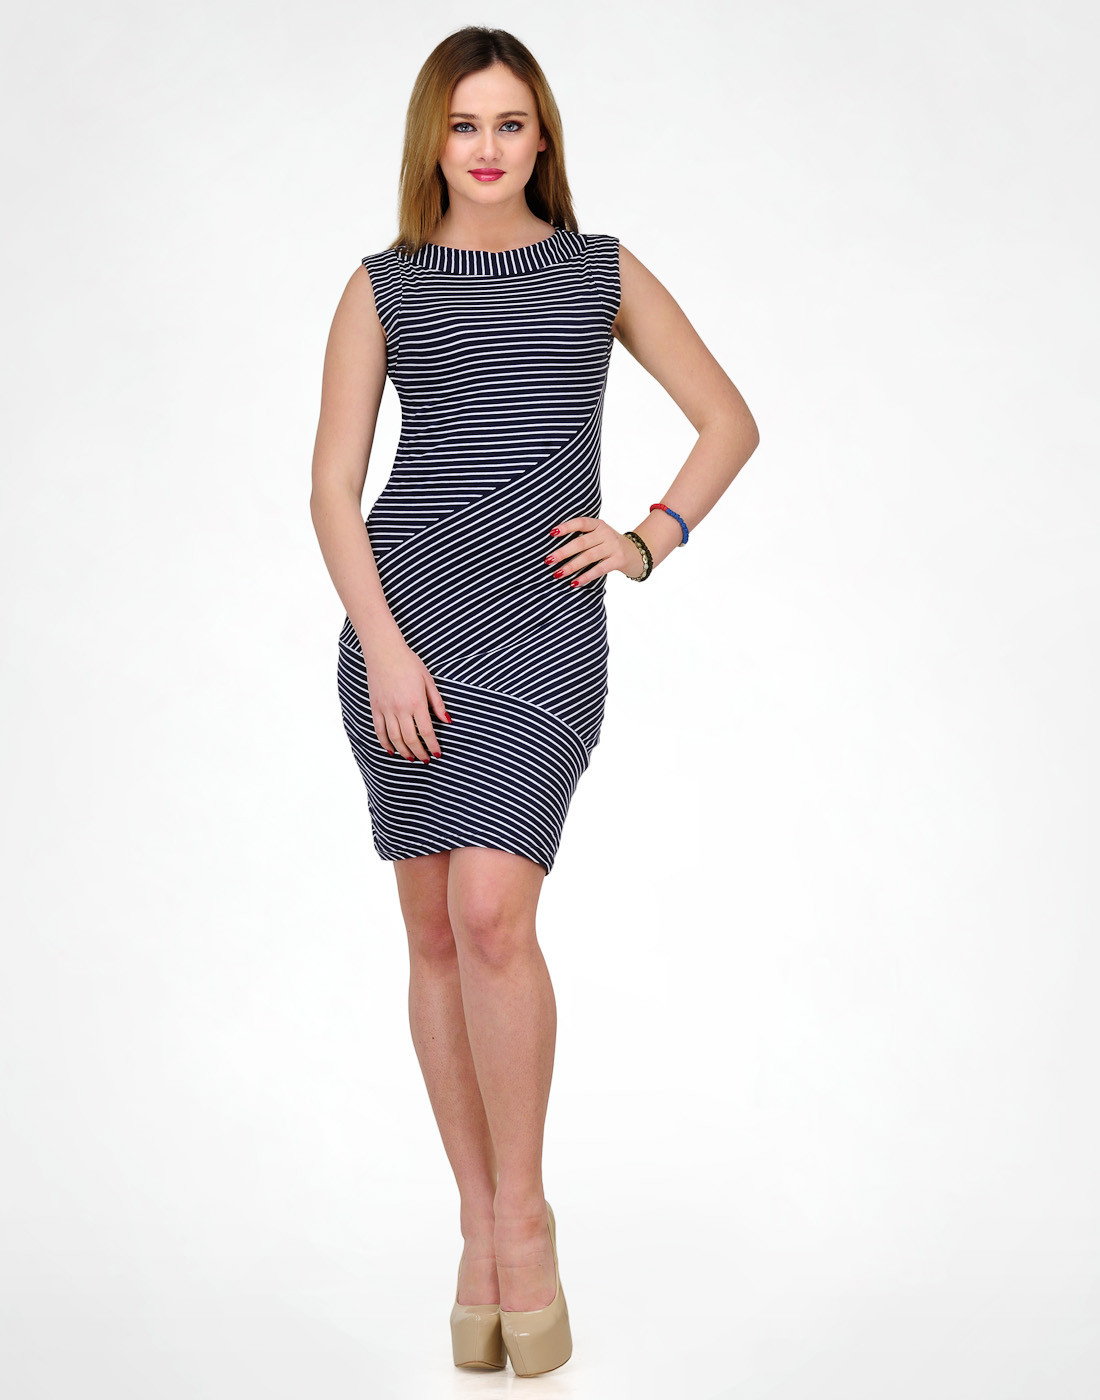 Color Cocktail Womens A-line Dark Blue, White Dress